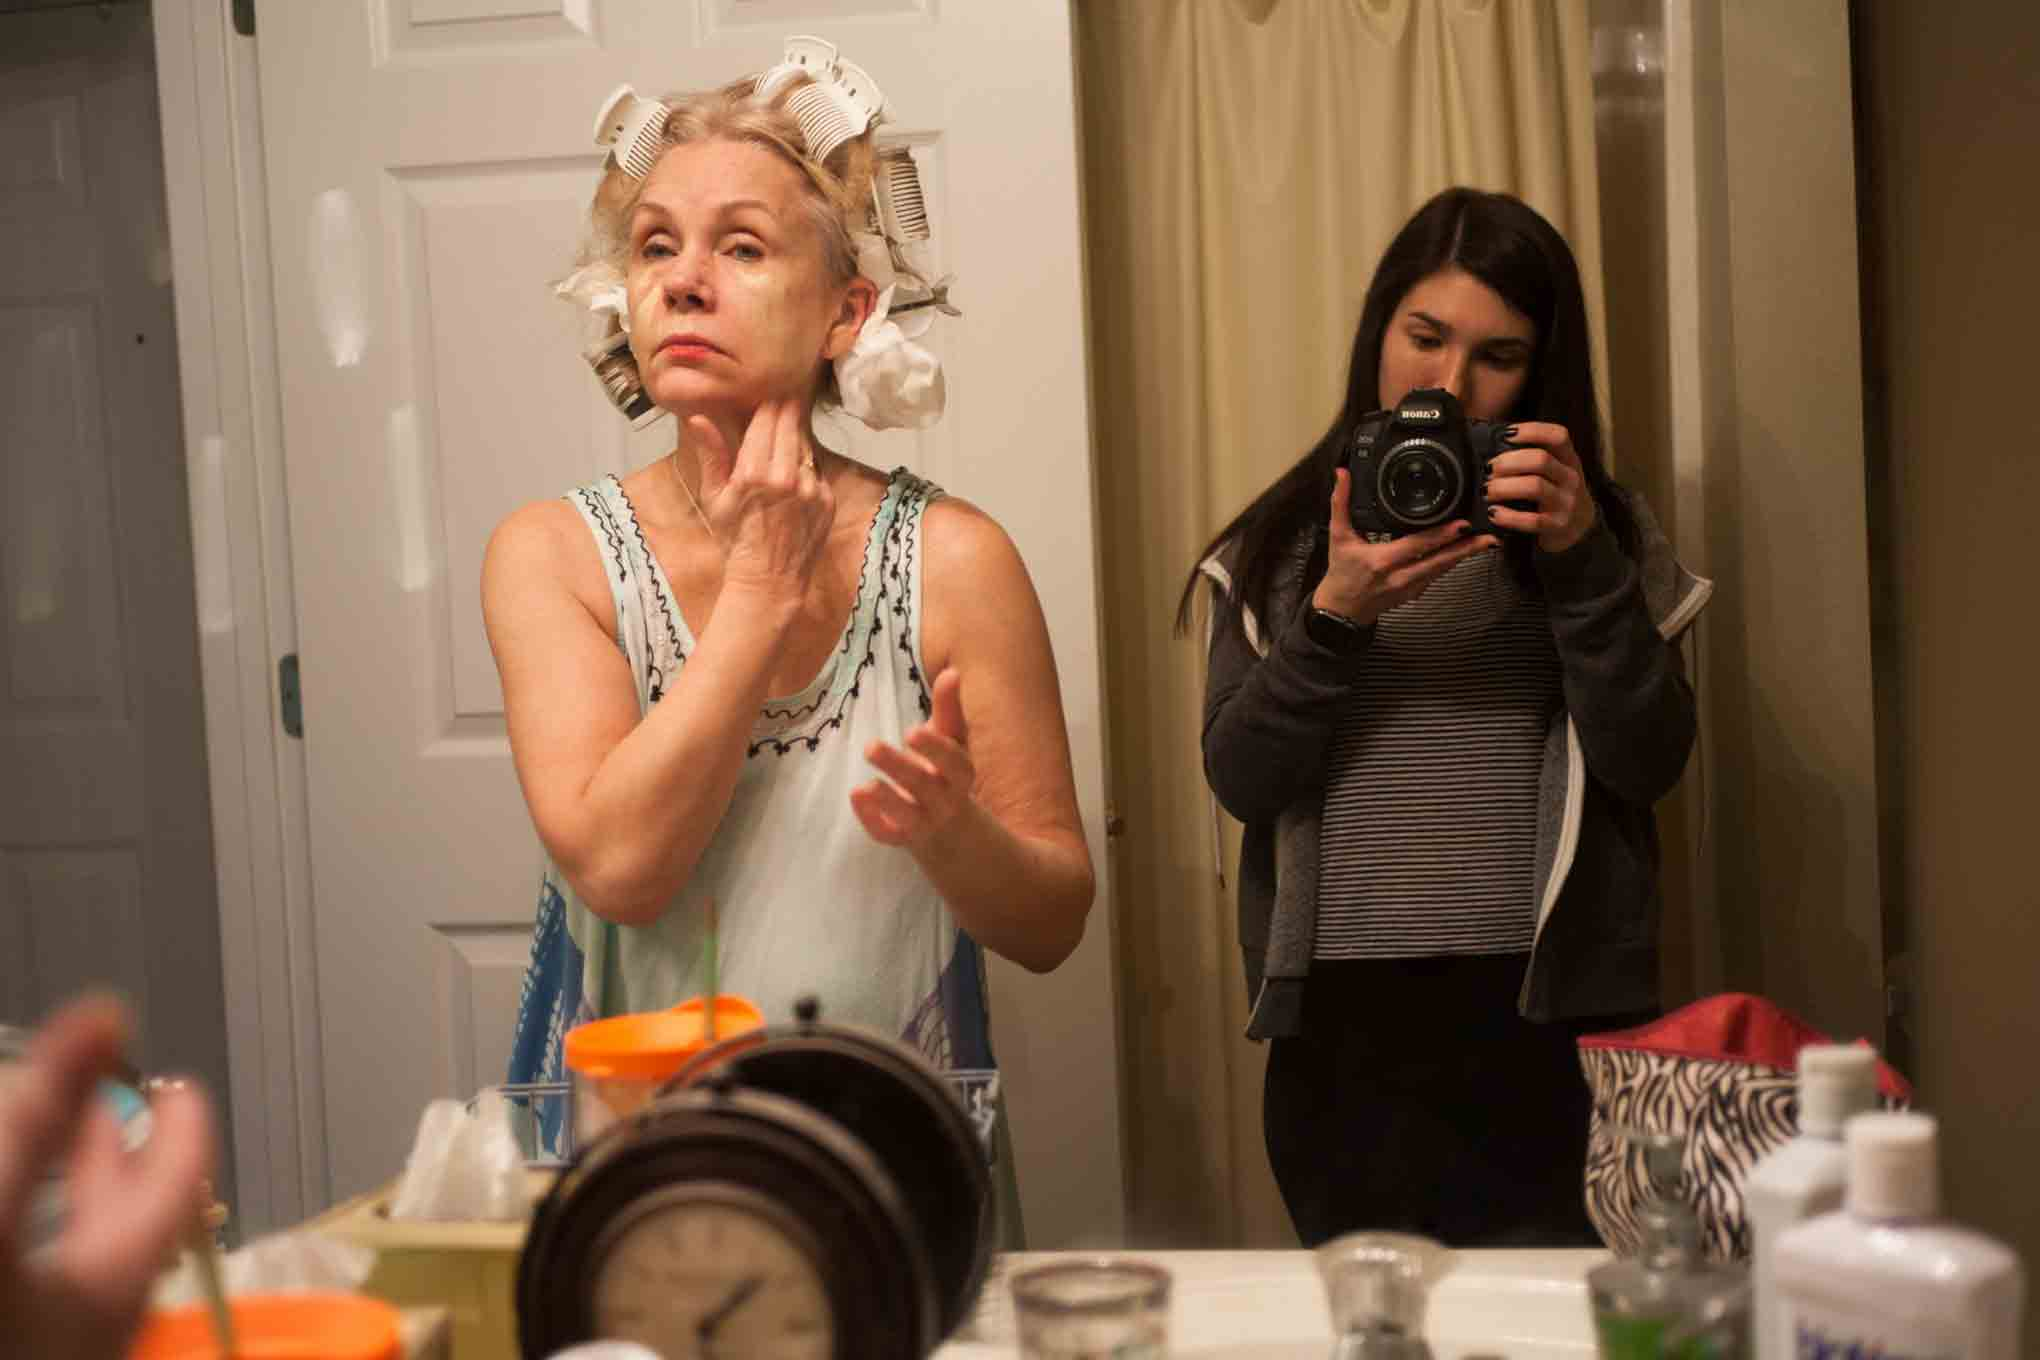 Spitz calls this photo of her mother applying makeup Mom's Mask